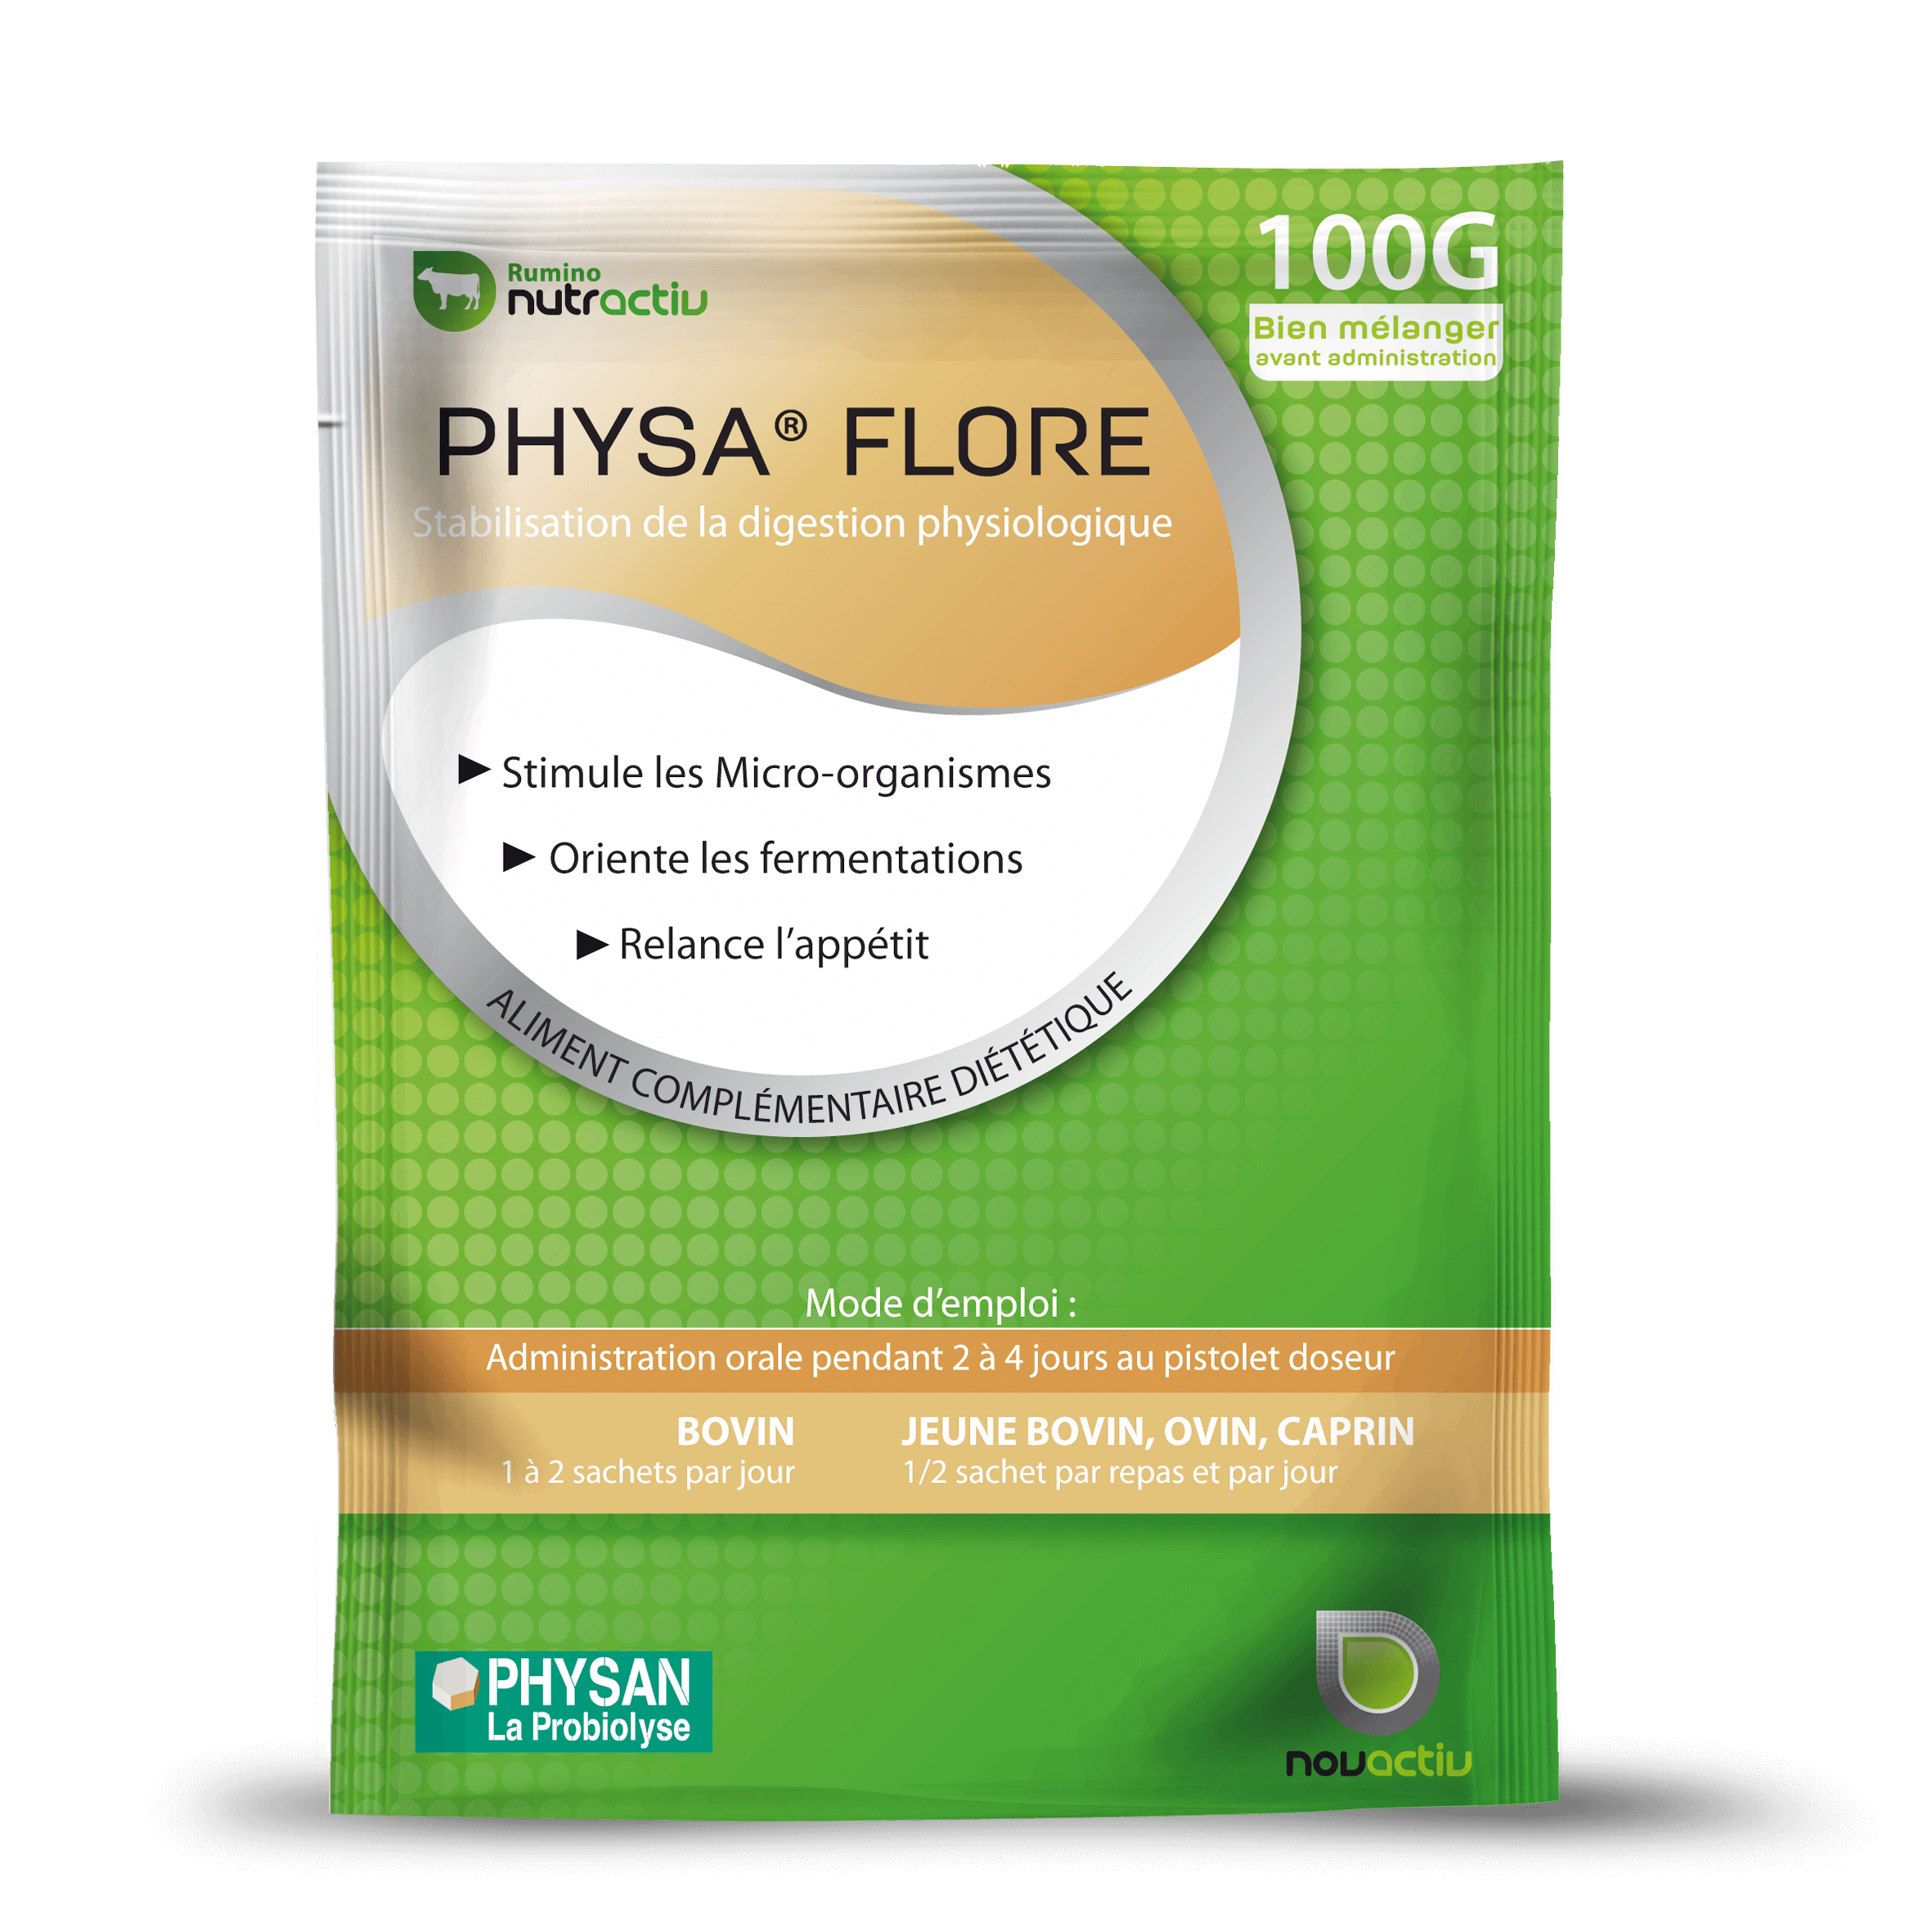 PHYSA FLORE : flore intestinale - Physan